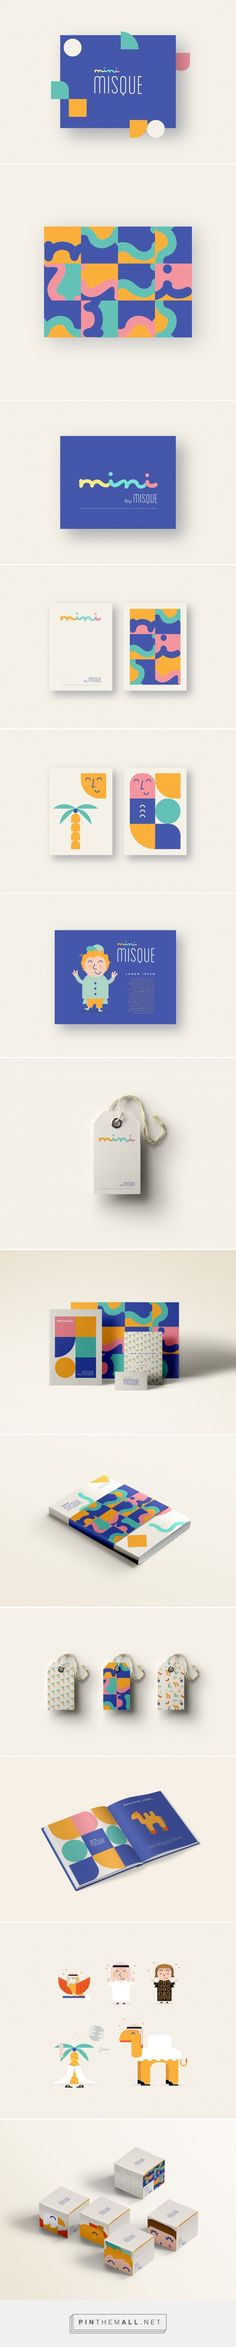 Mini Misque Branding on Behance | Fivestar Branding – Design and Branding Agency & Inspiration Gallery